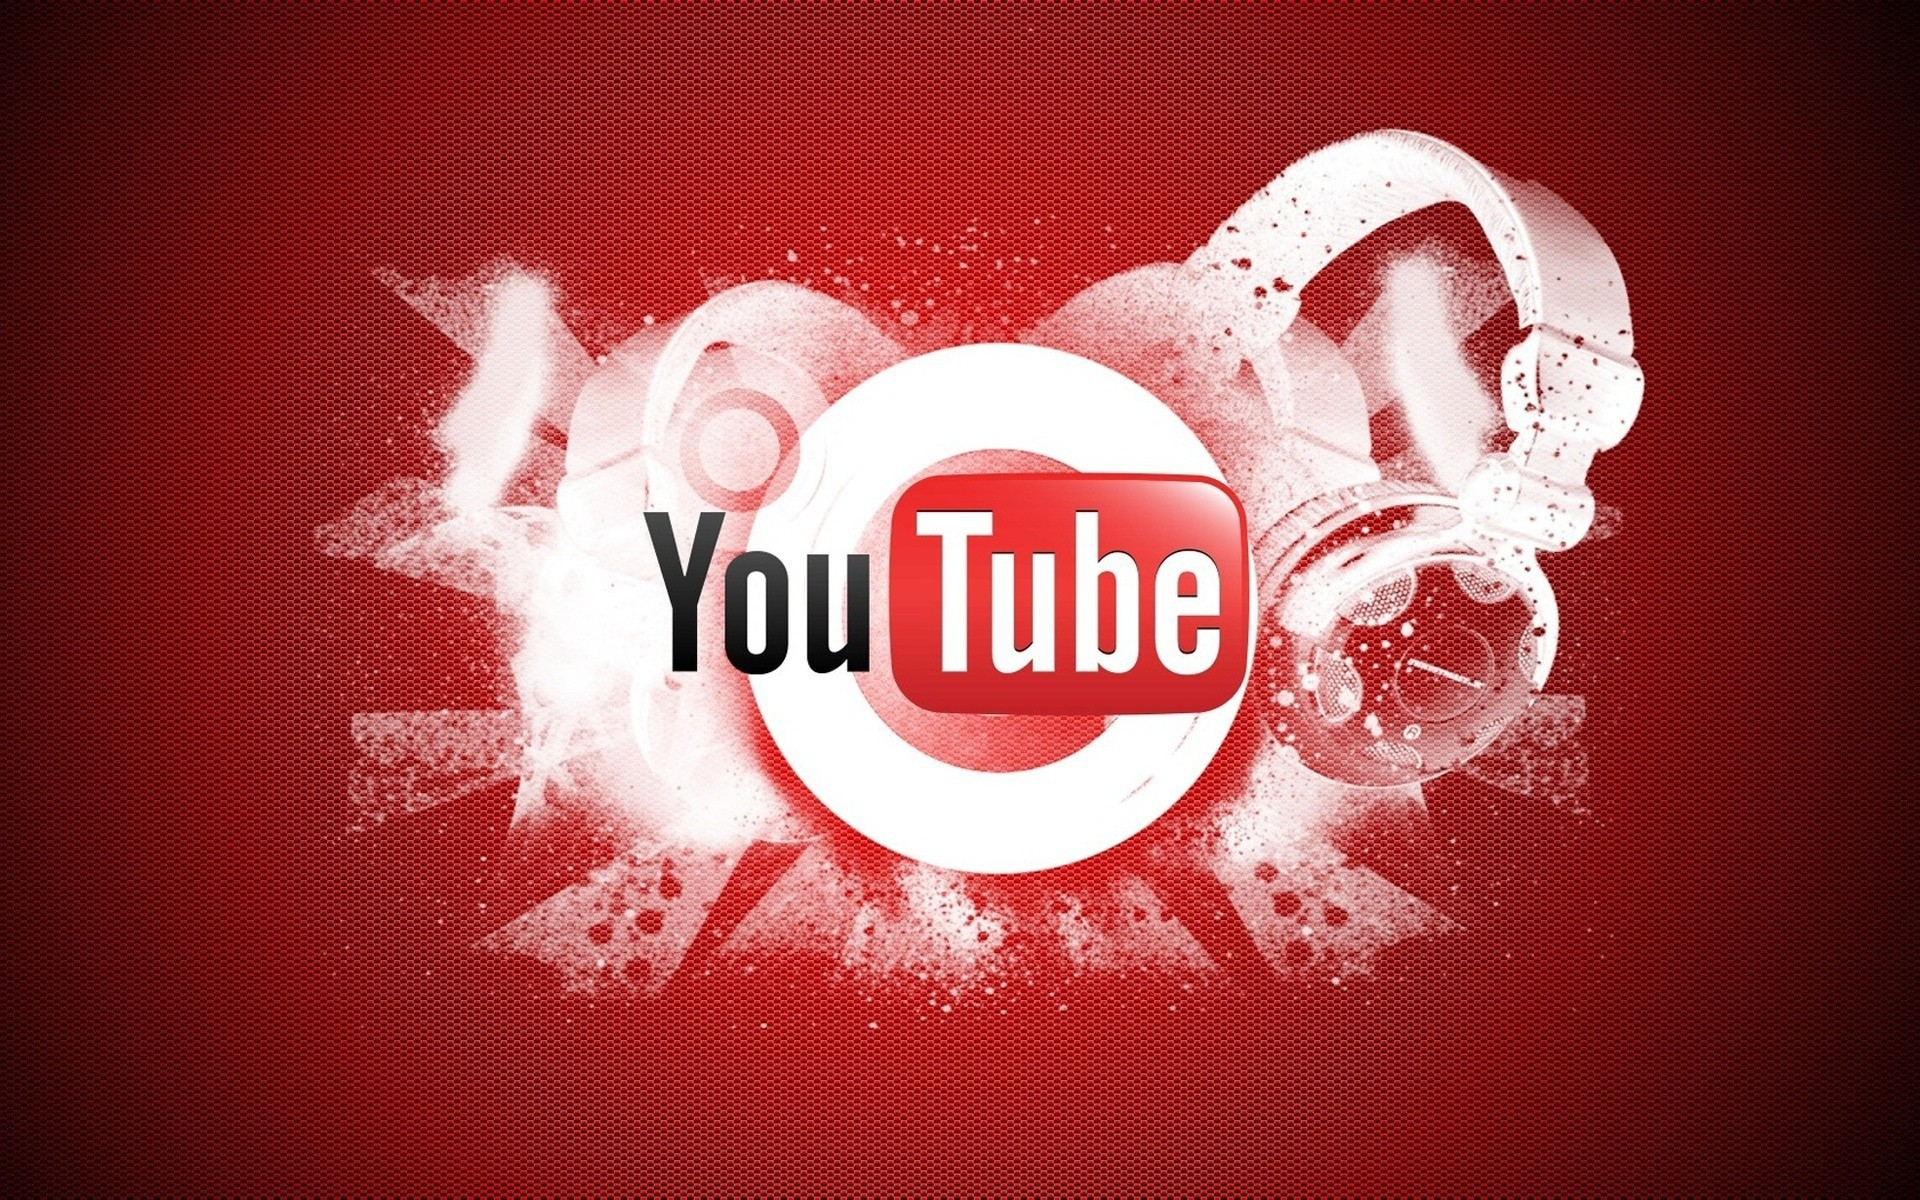 Computers___Social_networks_____Public_network_YouTube_083349_